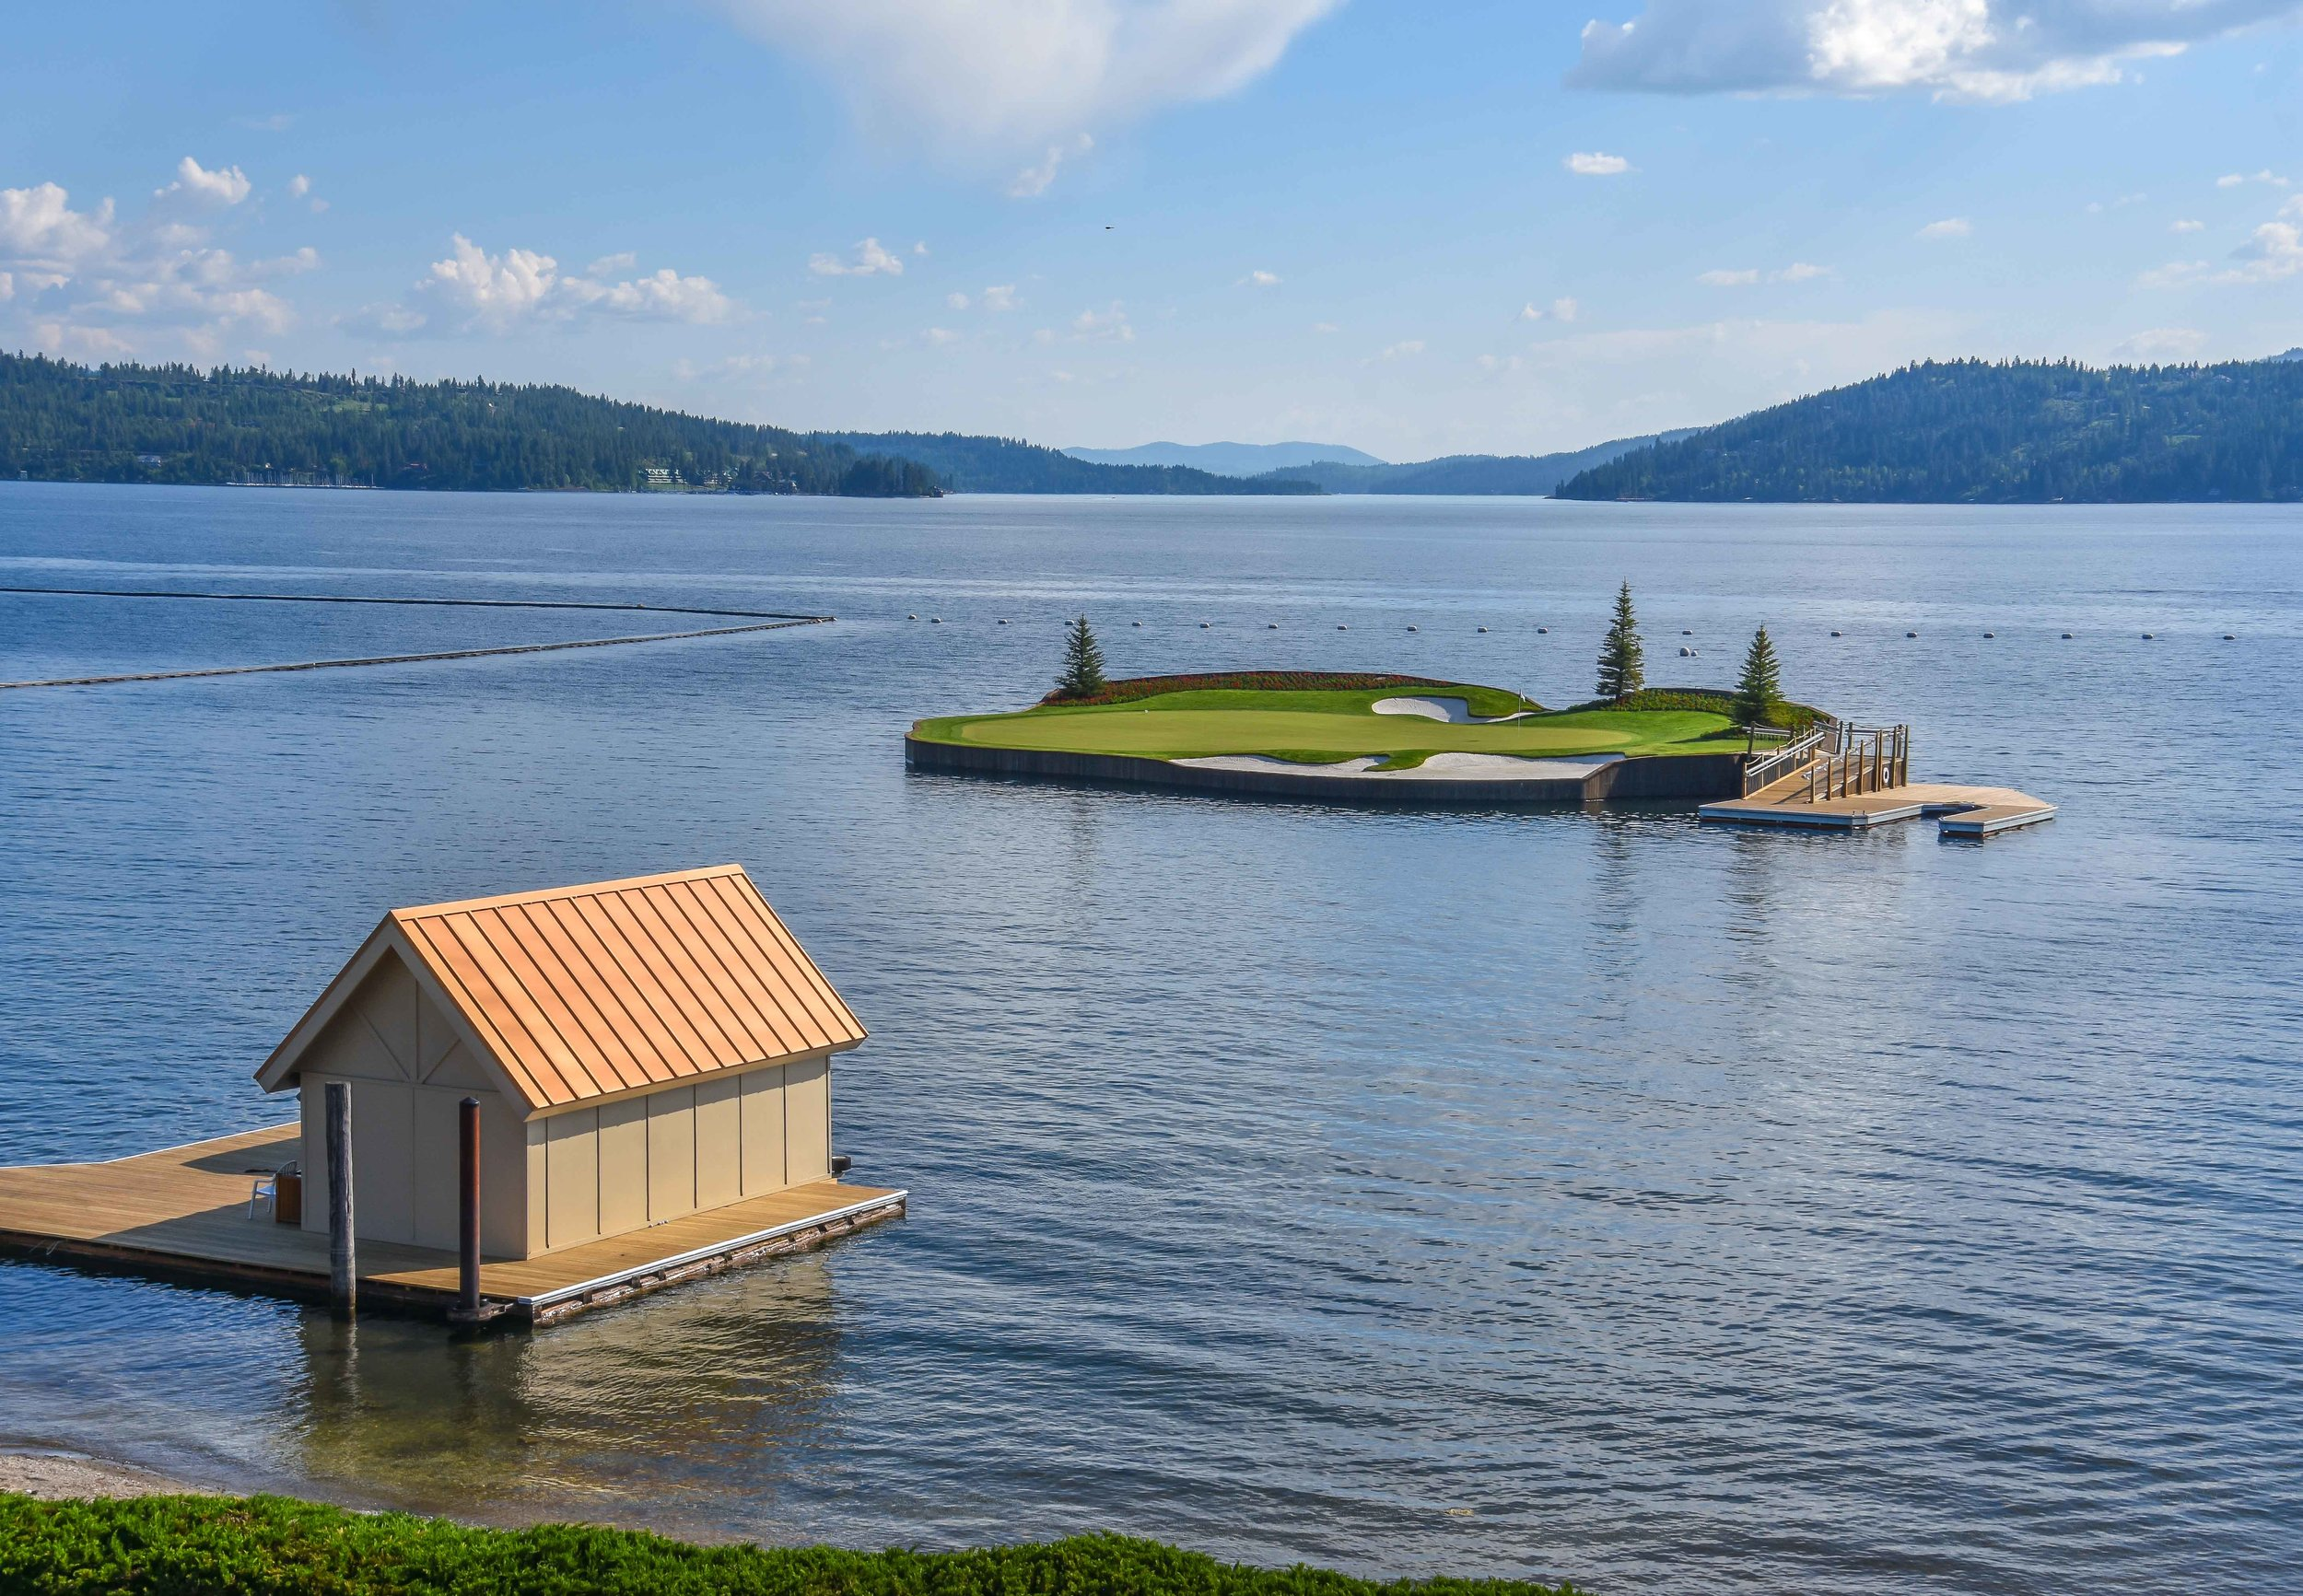 The view of the floating 14th green emerges as soon as you step outside of the clubhouse.